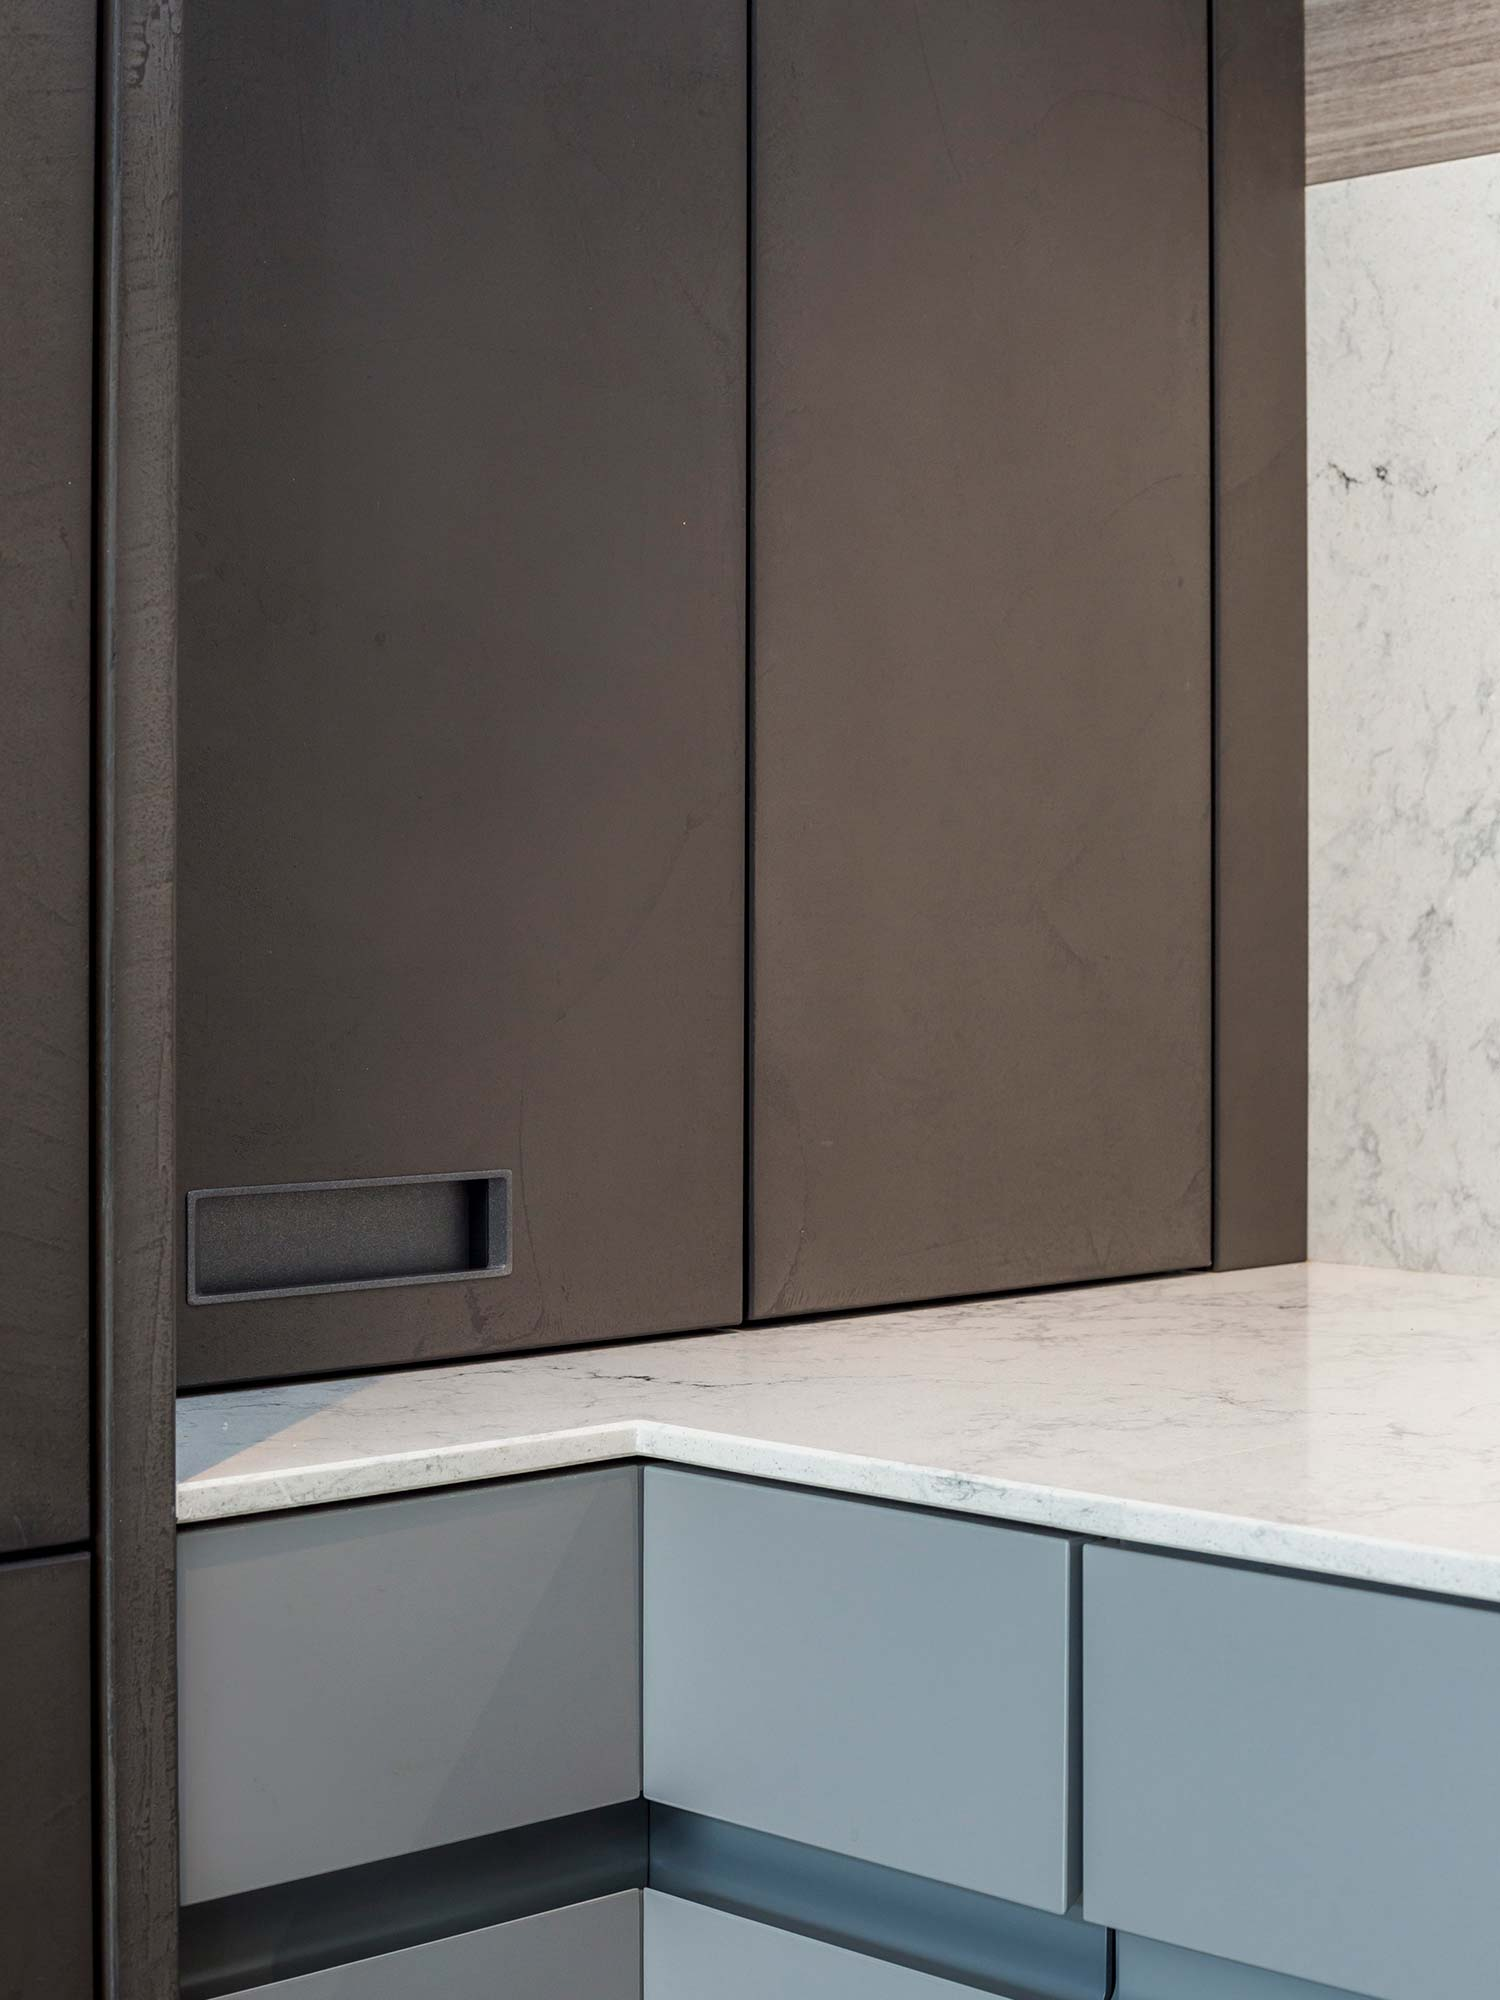 Inset handles in Hubble designer kitchen